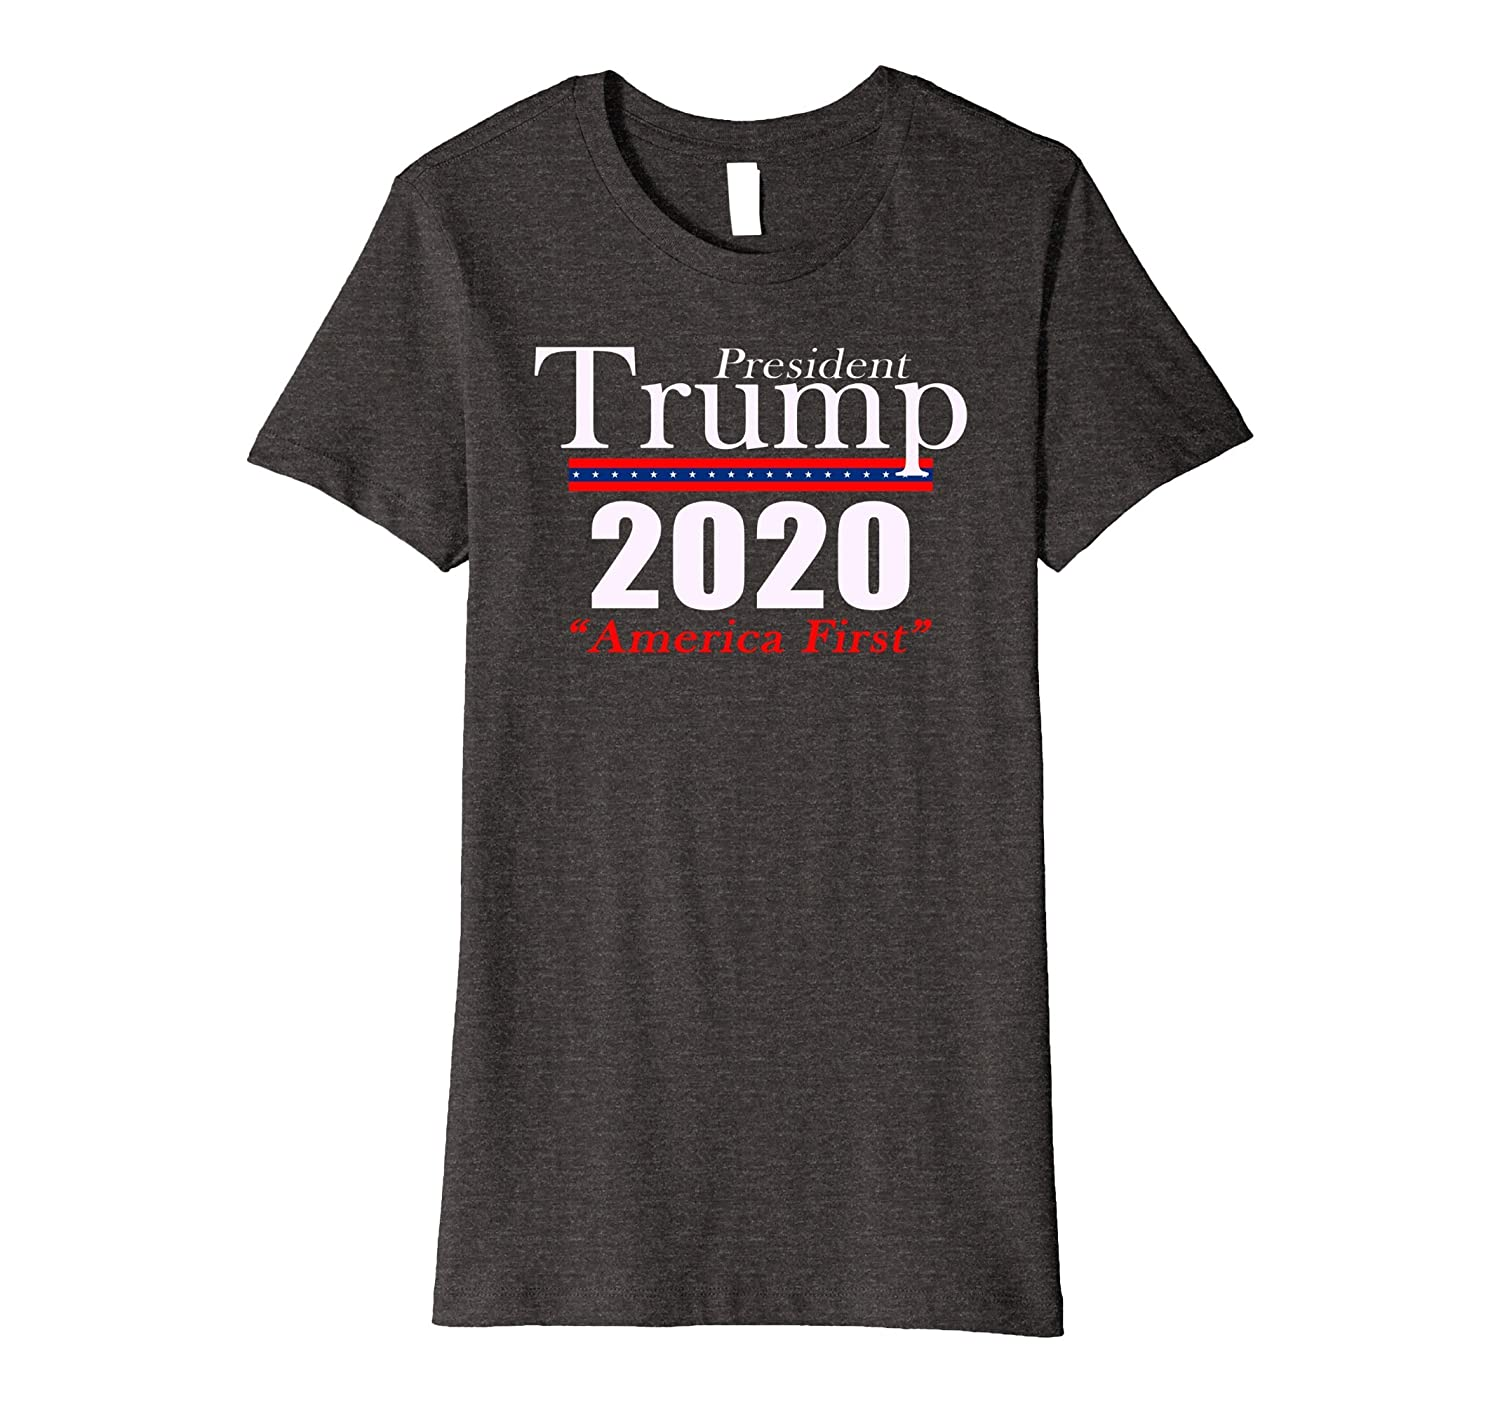 Donald Trump For President 2020 America First Patriot shirt